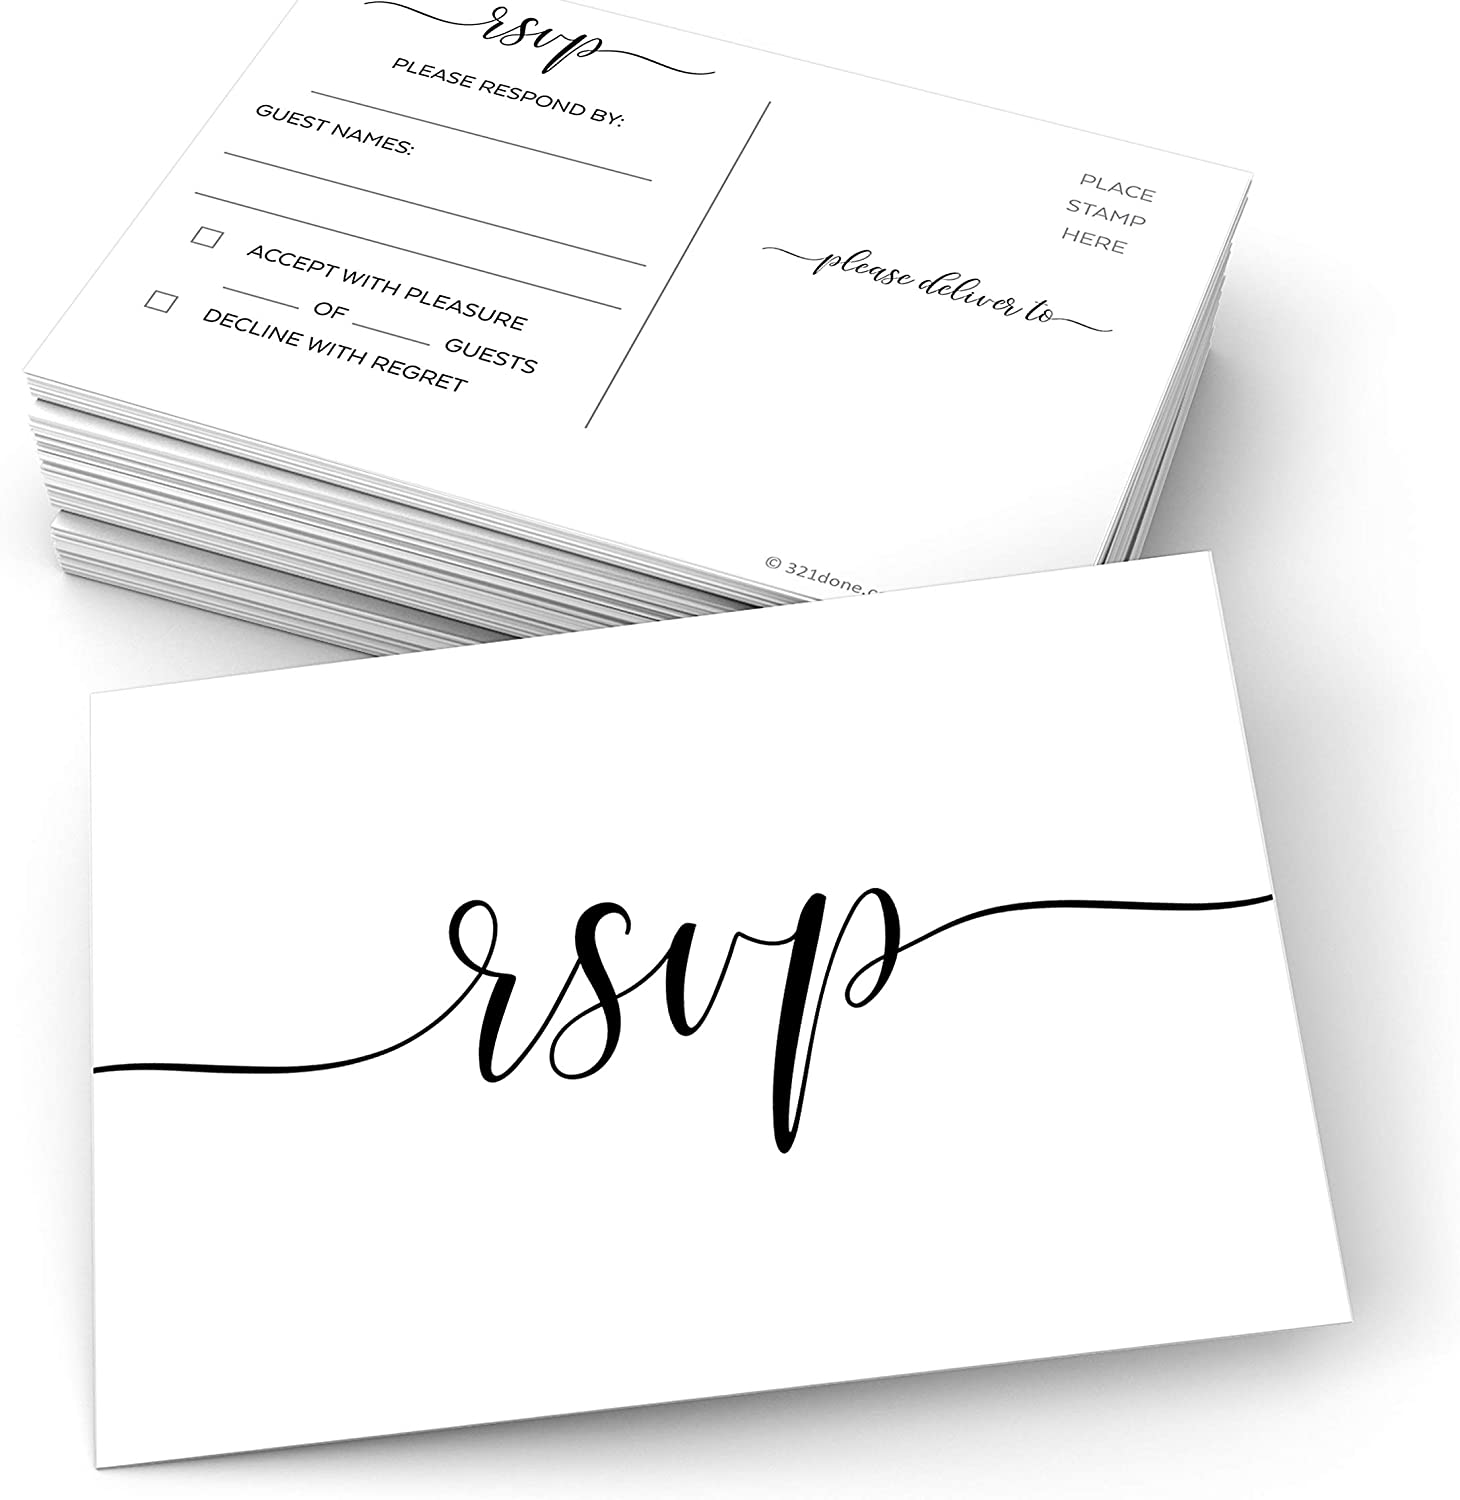 """321Done RSVP Postcards (Set of 50) Small White 3.5"""" x 5"""" - Blank of Blank Guests, USPS Post Office Addressing Response Cards for Wedding, Bridal Shower, Baby Shower - Made in USA - Formal Elegant"""